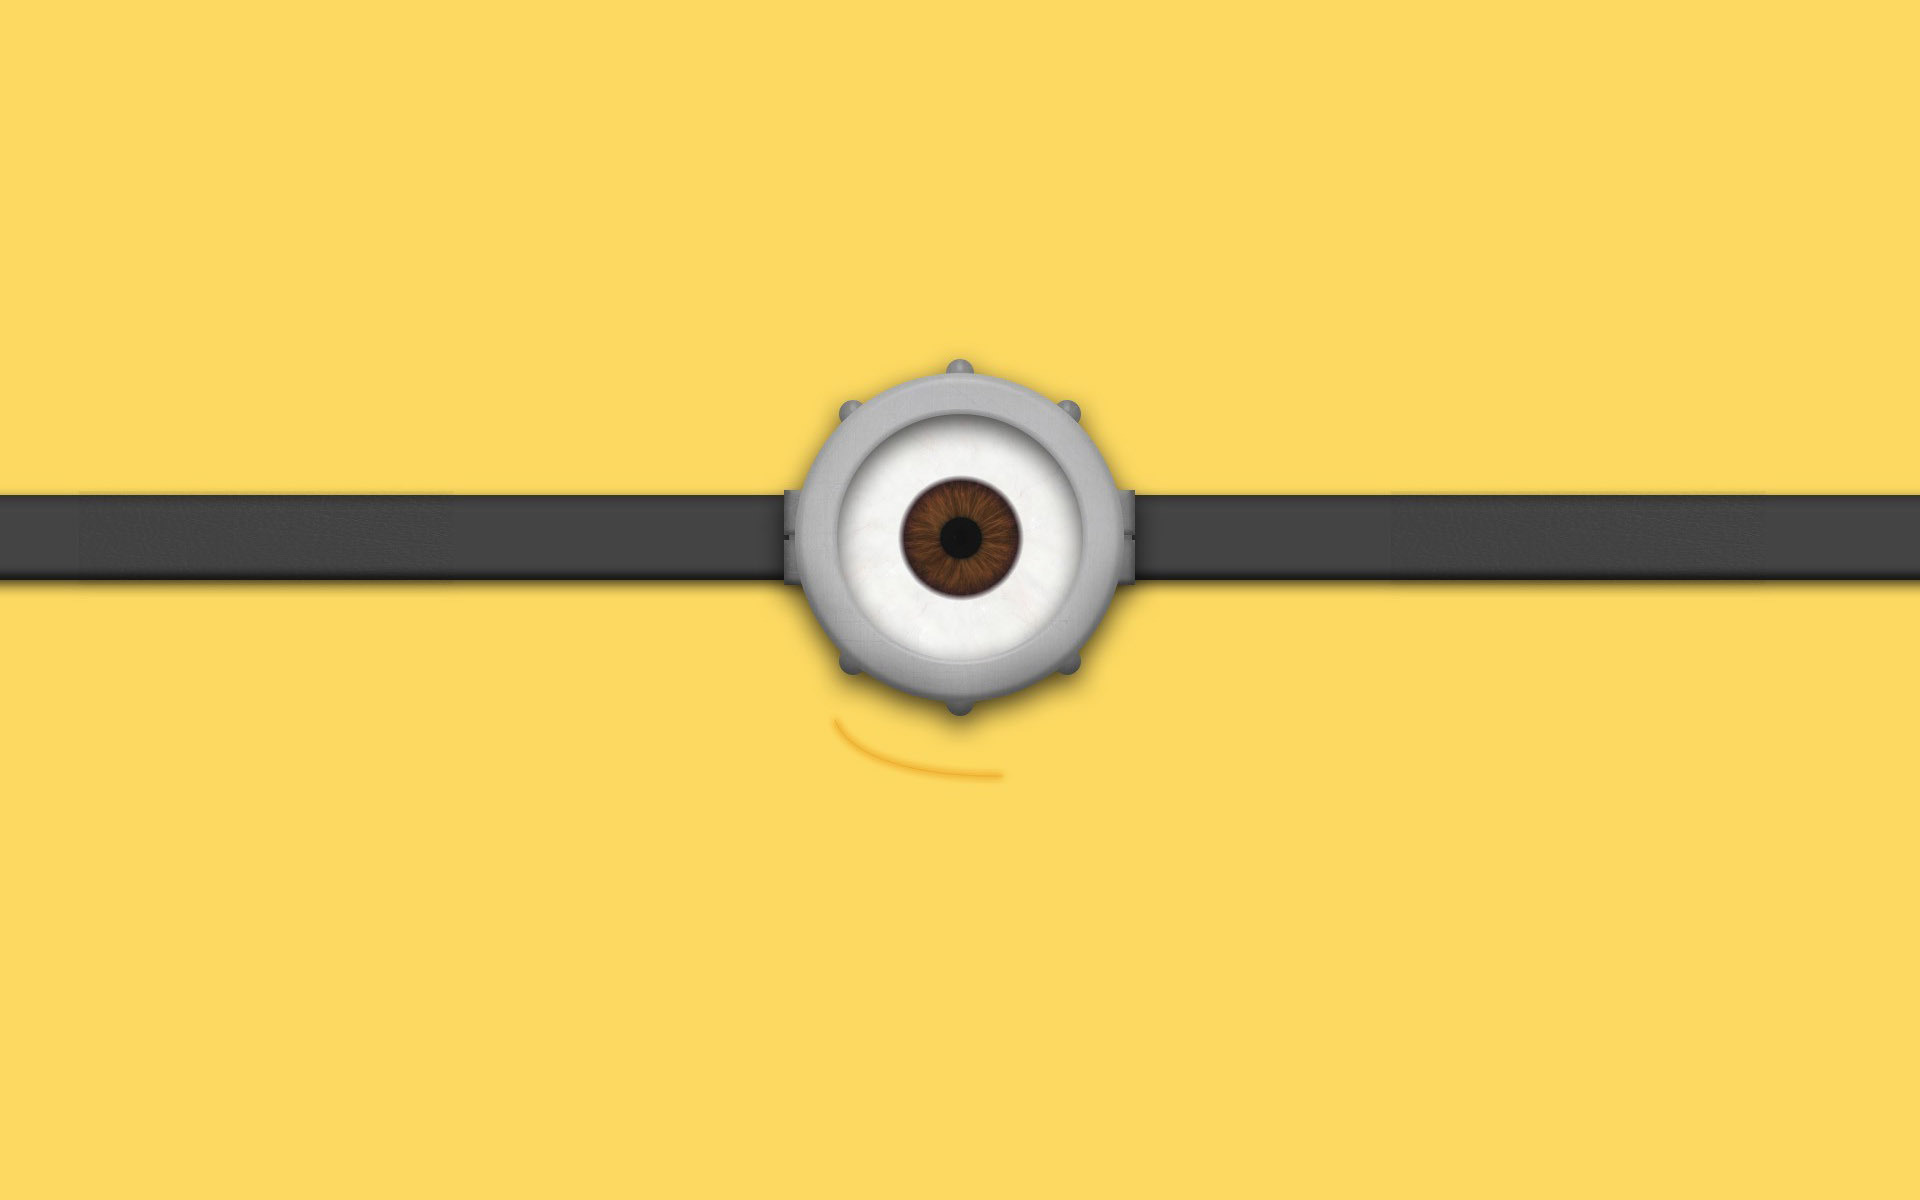 Ojos de Minion Wallpaper